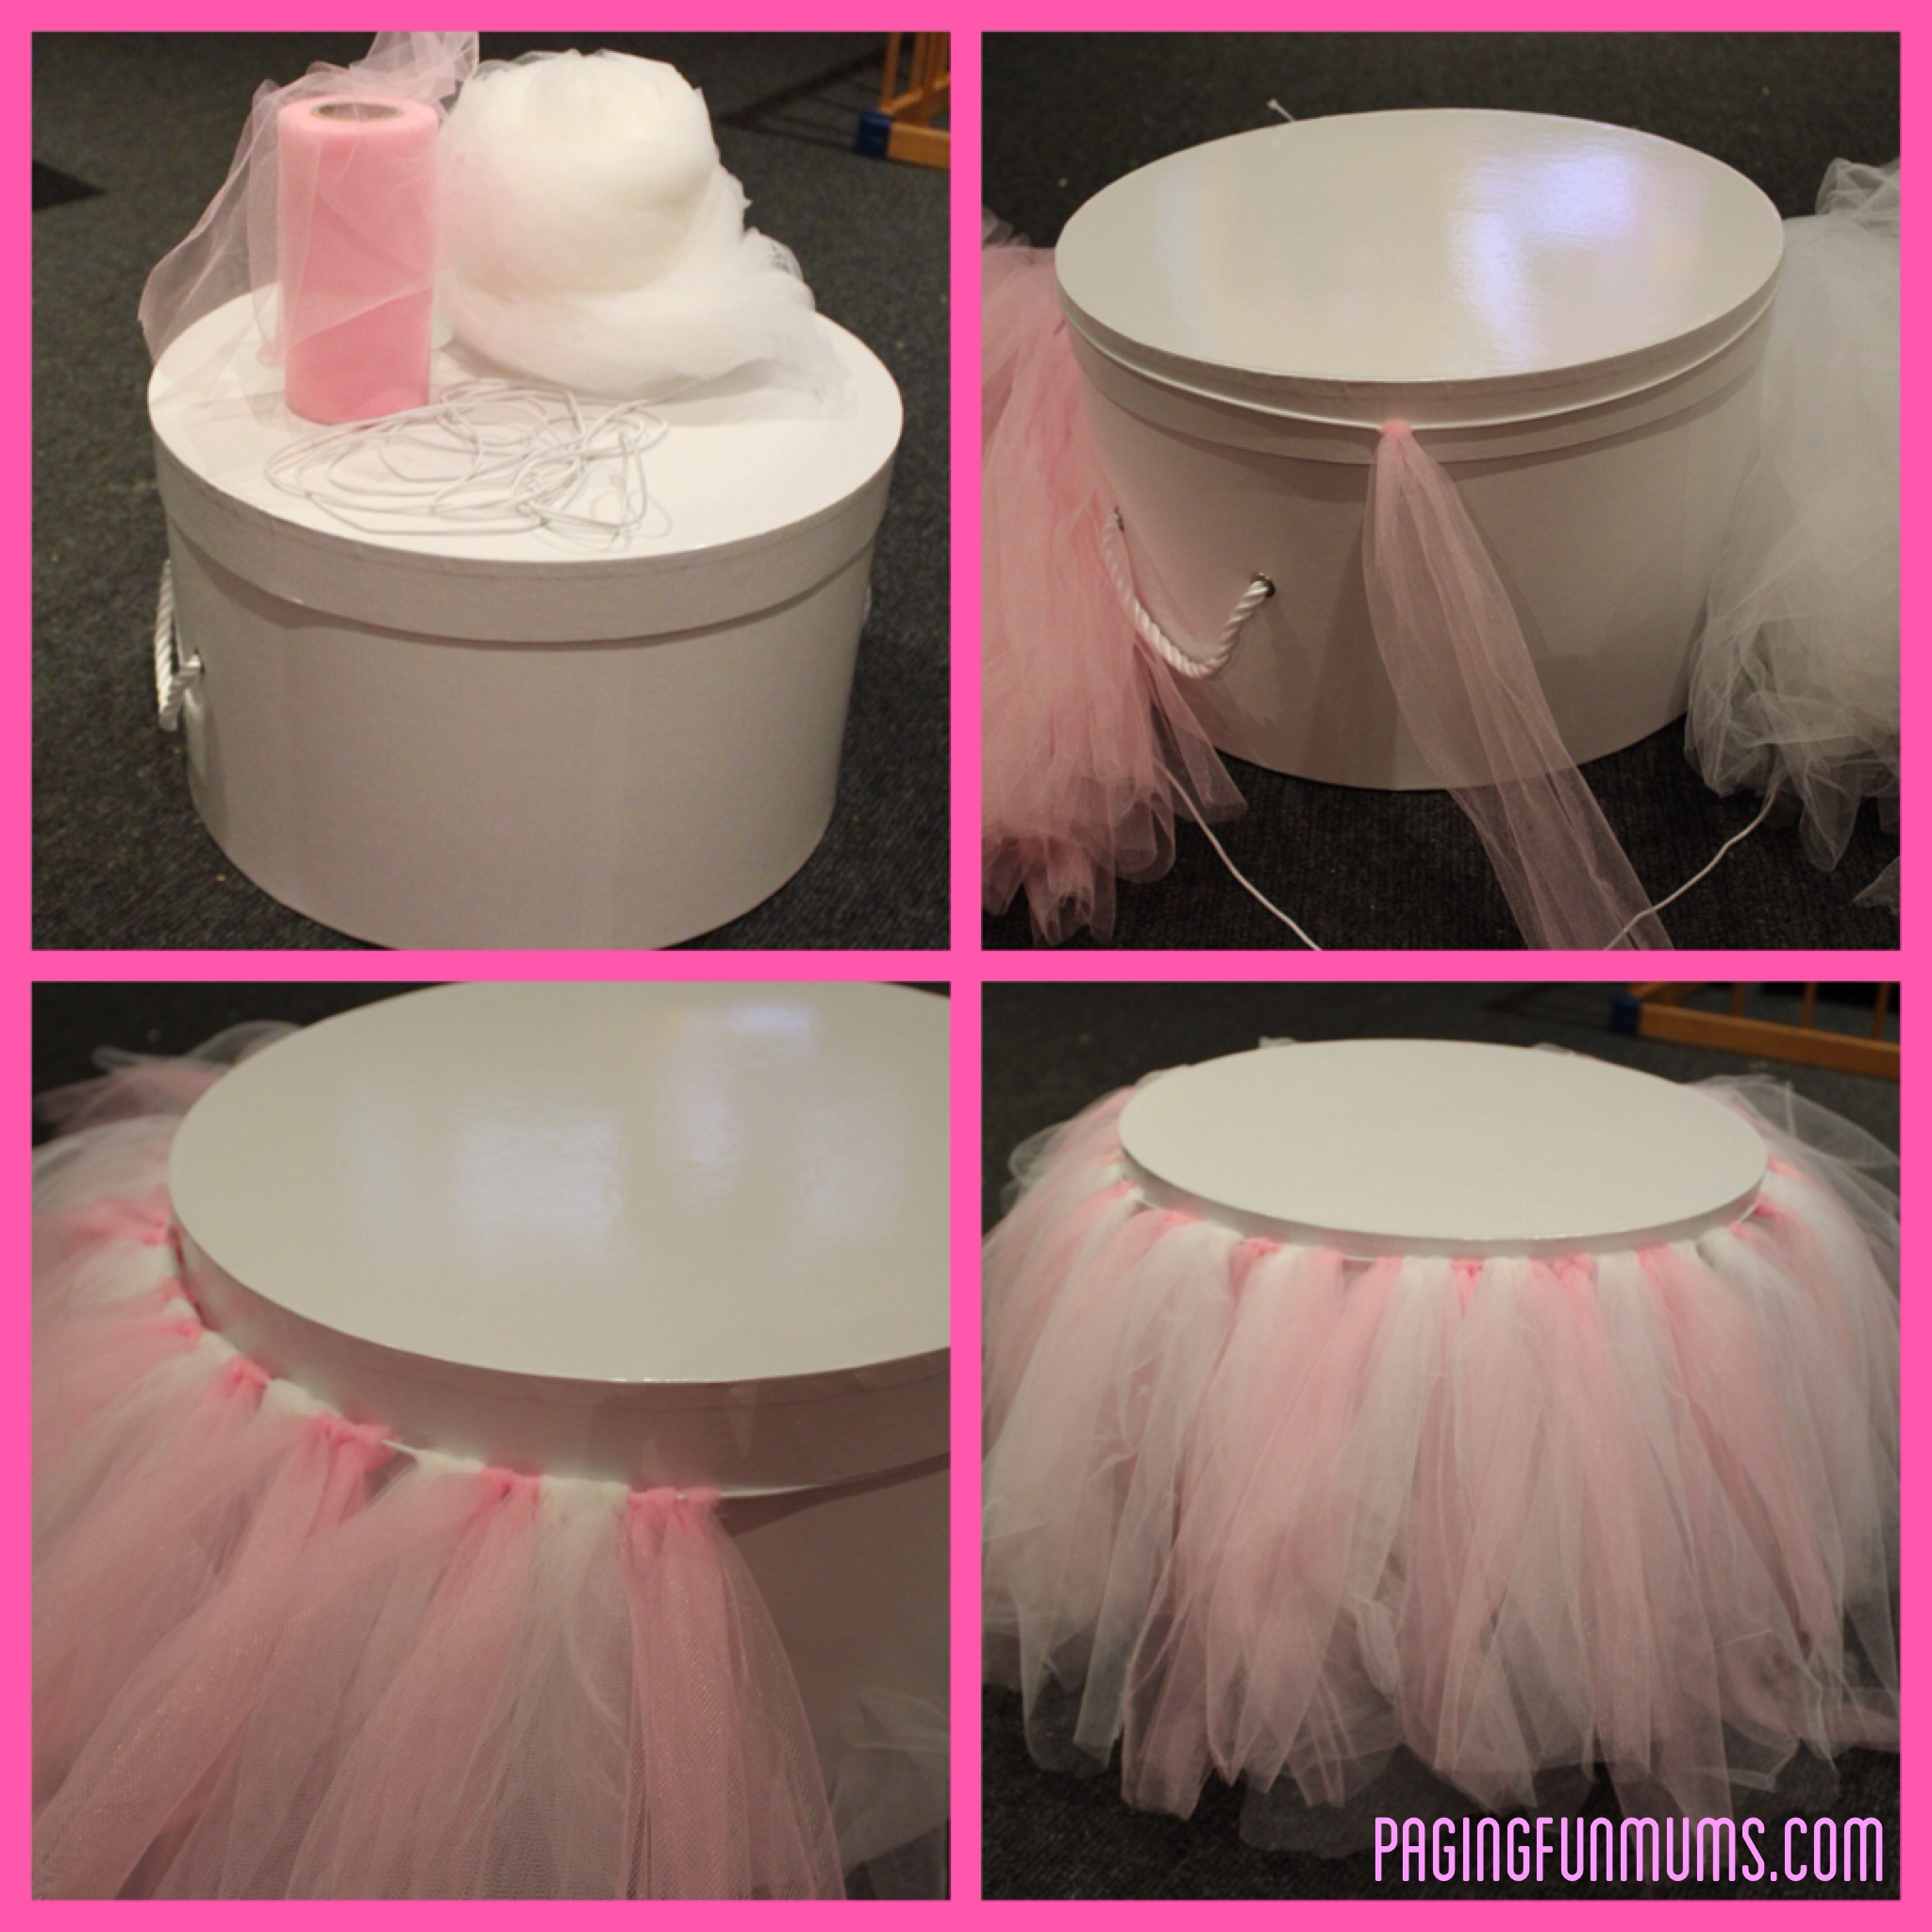 diy tulle cake stand paging fun mums. Black Bedroom Furniture Sets. Home Design Ideas